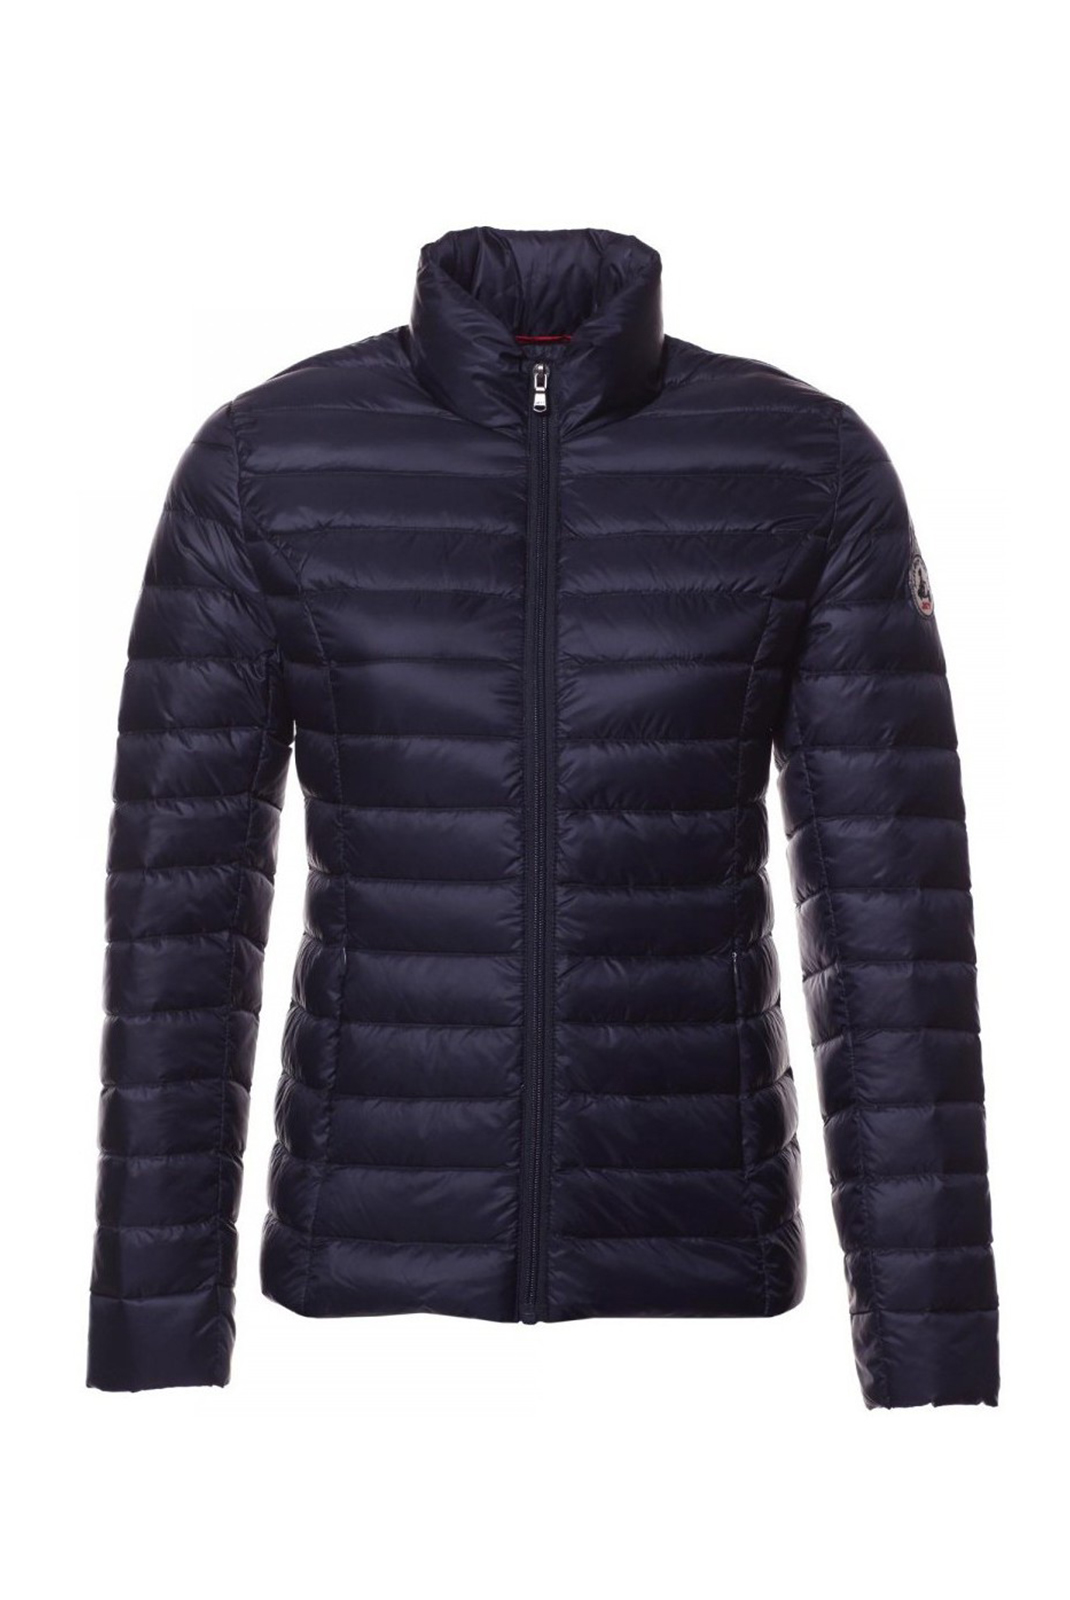 Blouson  Just over the top CHA 104 MARINE